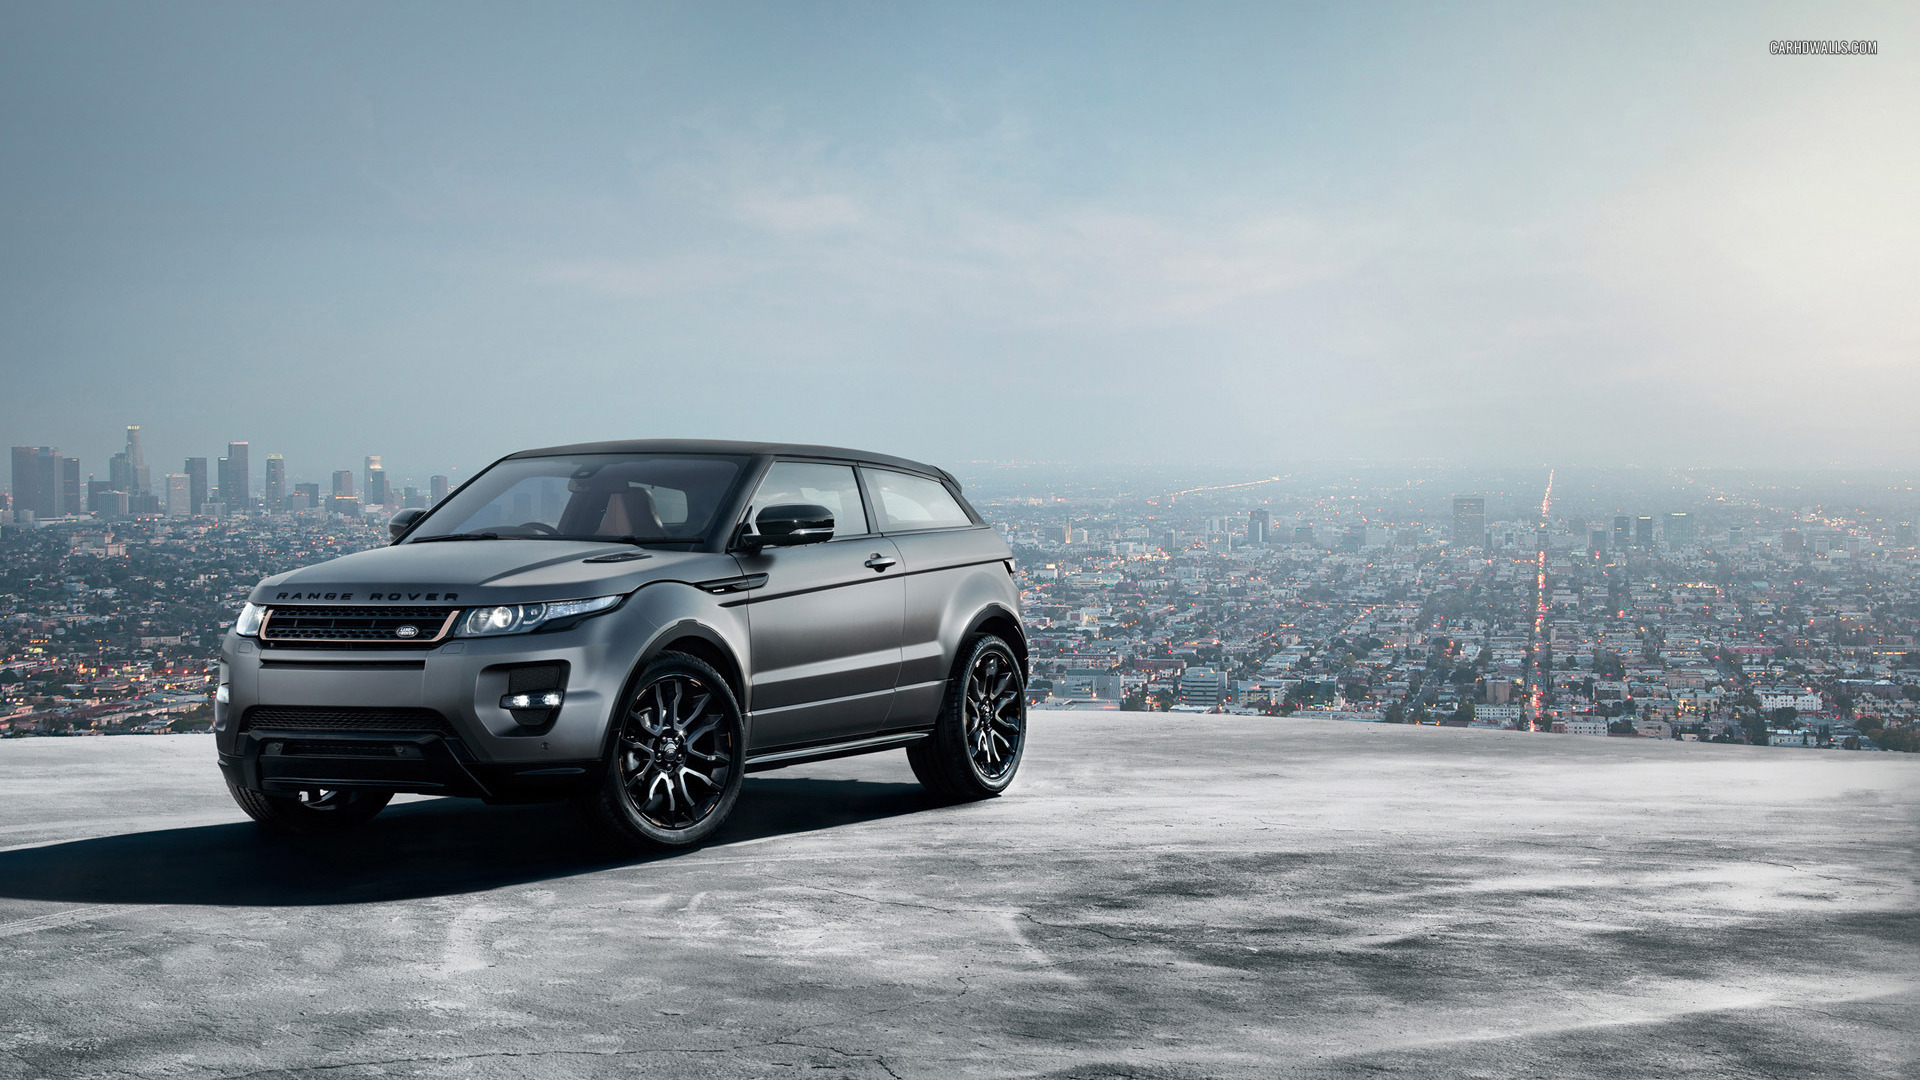 Evoque Wallpaper